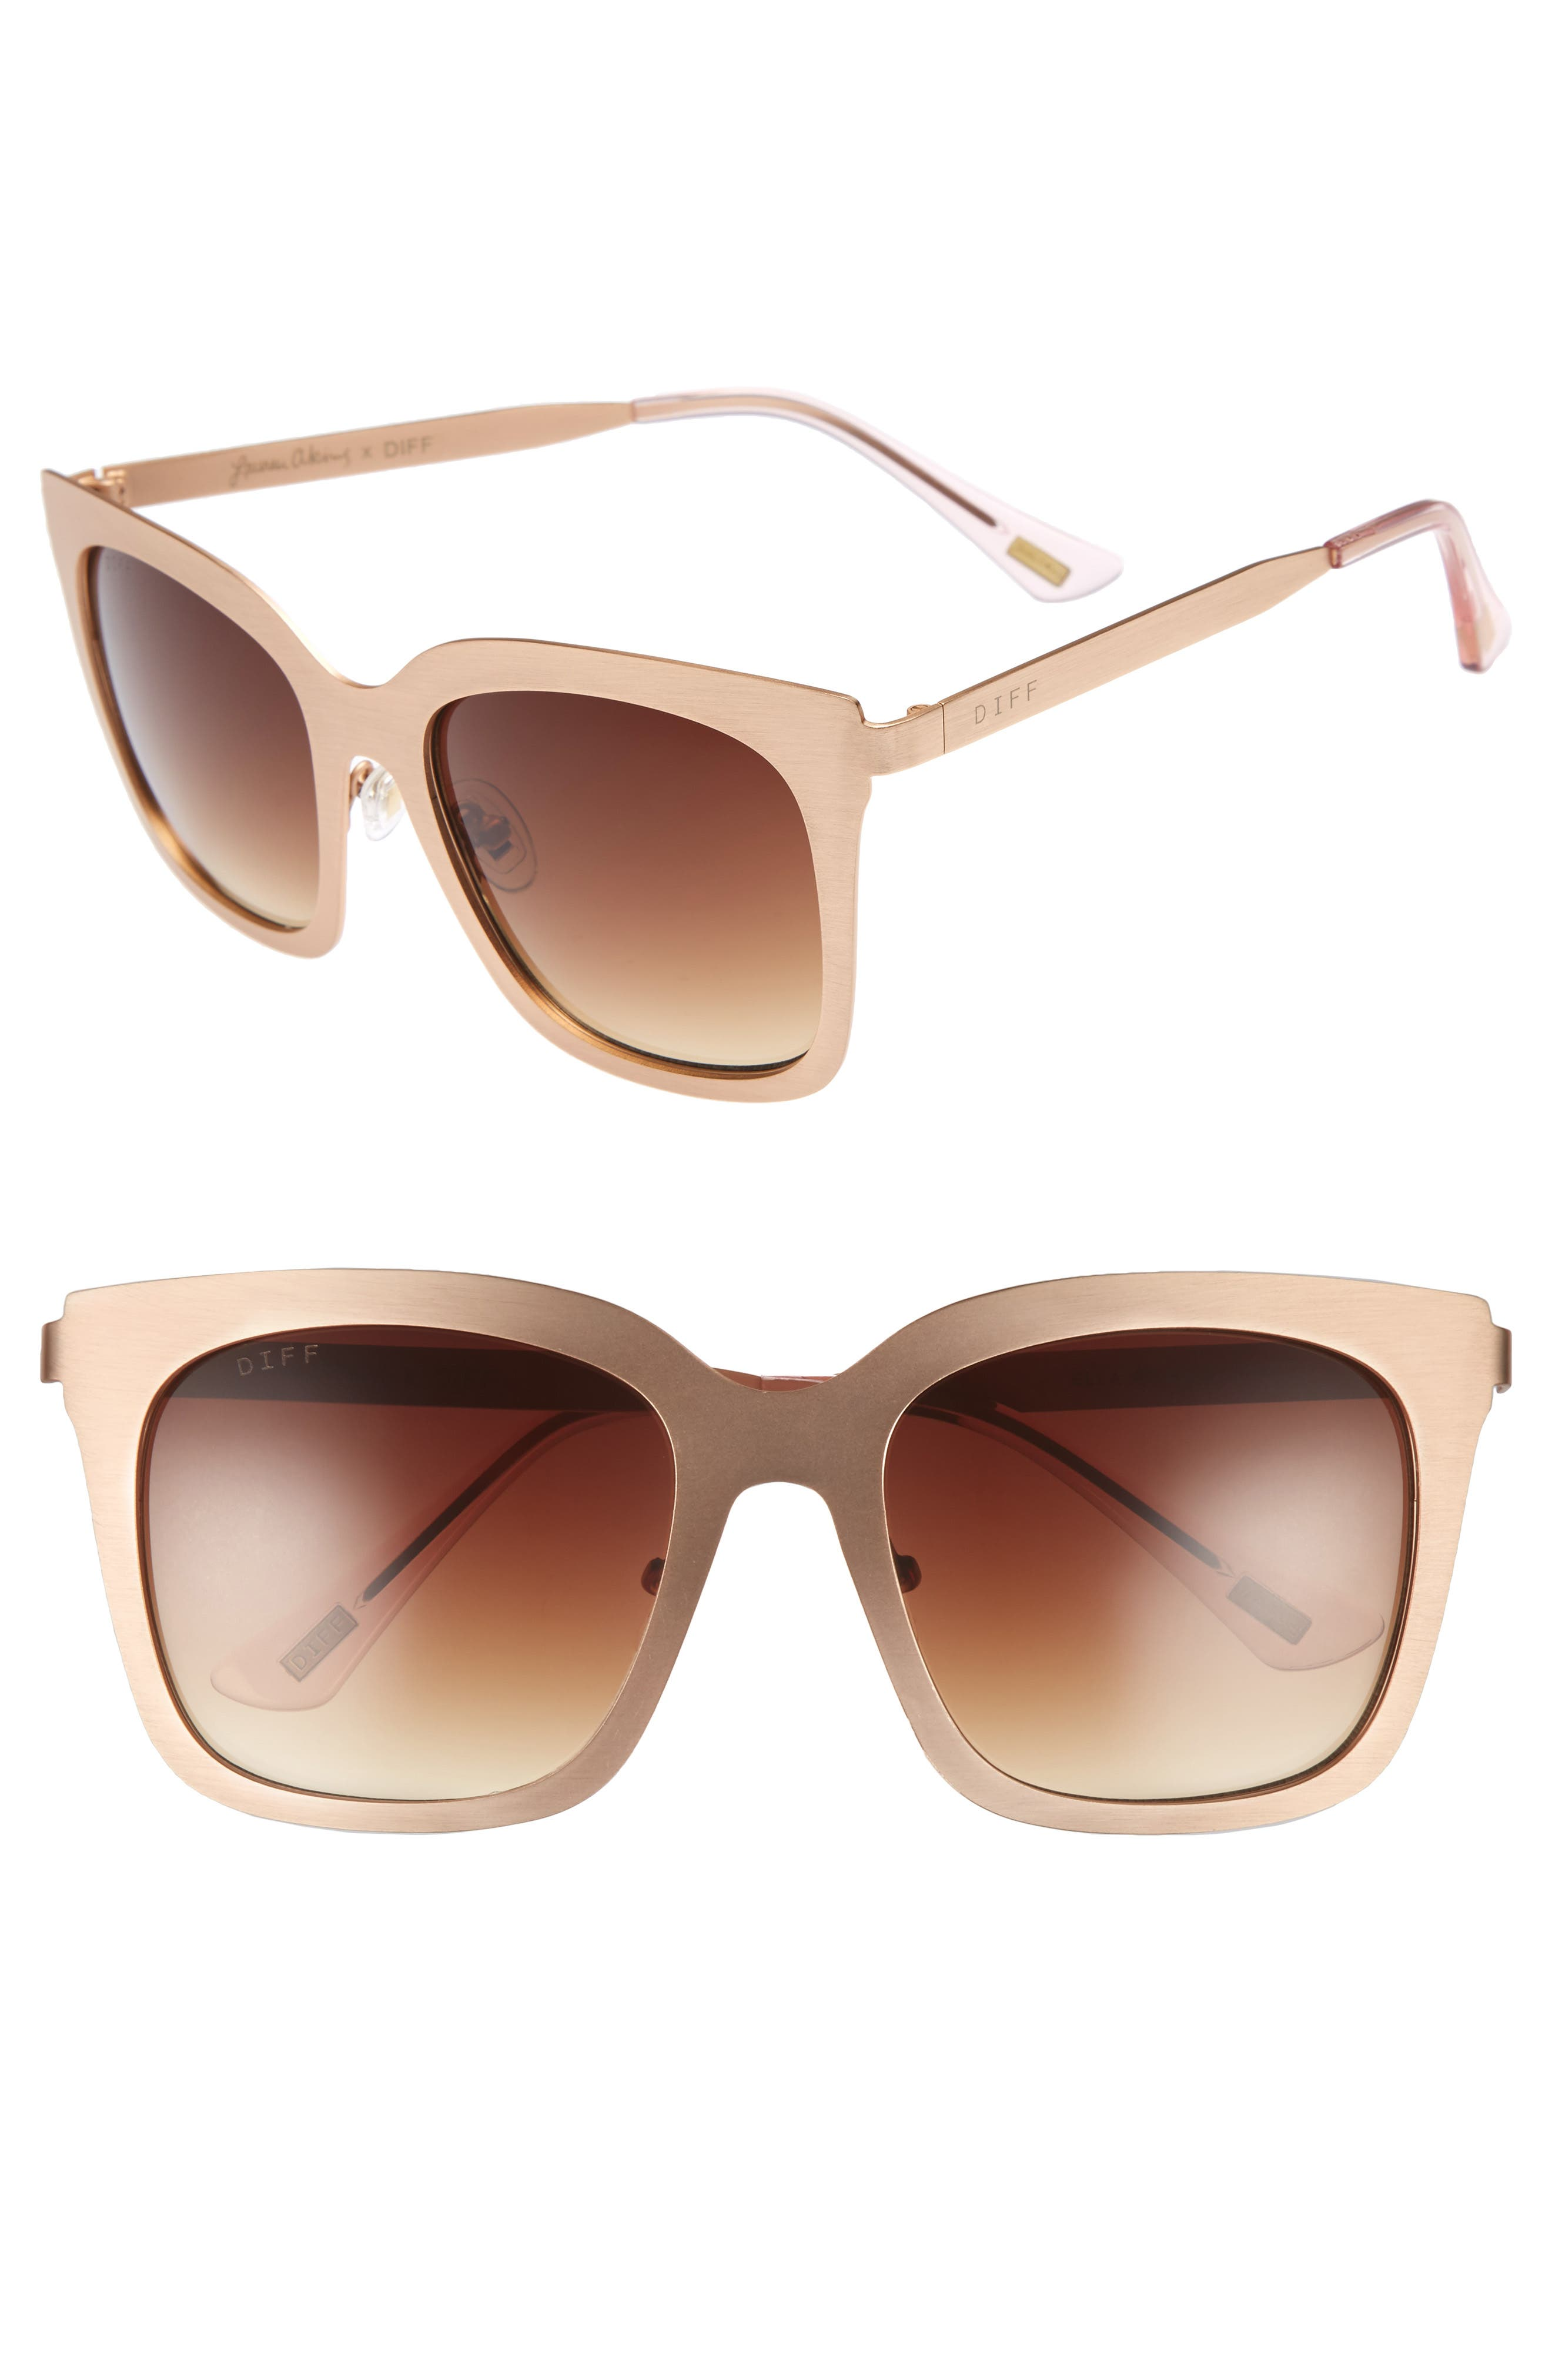 DIFF x Lauren Akins Ella 53mm Cat Eye Sunglasses